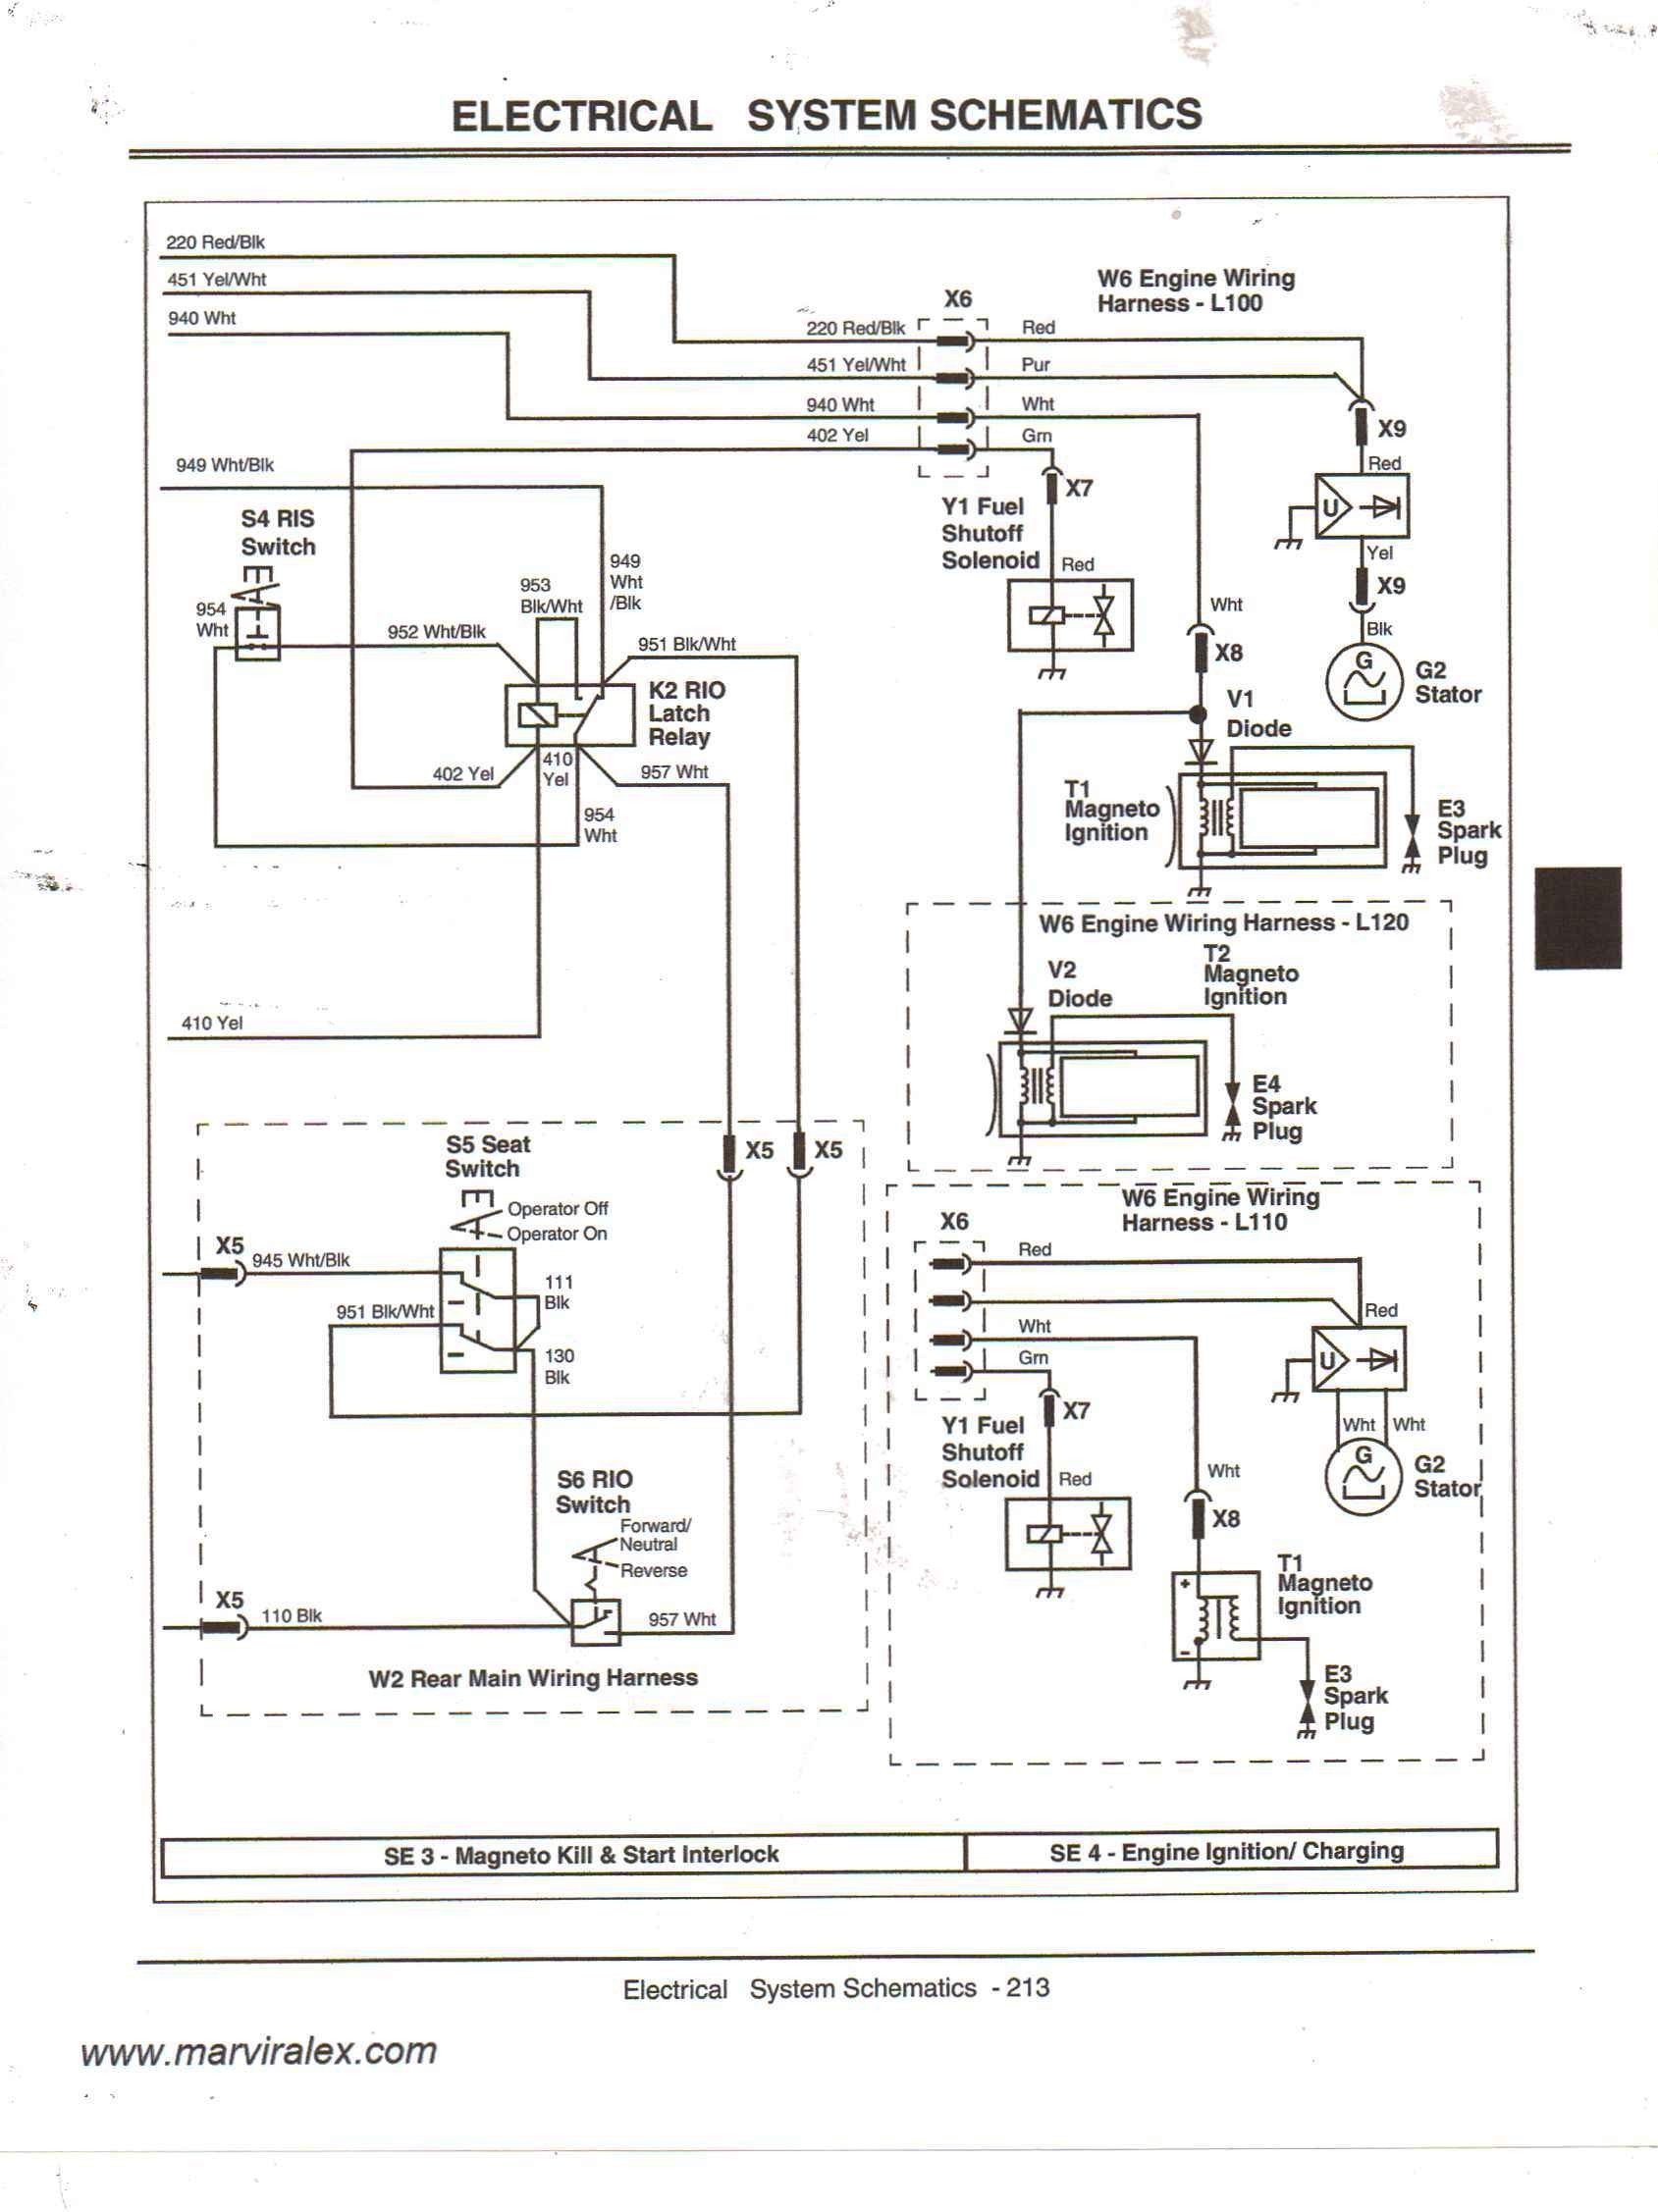 wiring diagram for john deere 455 wiring diagram